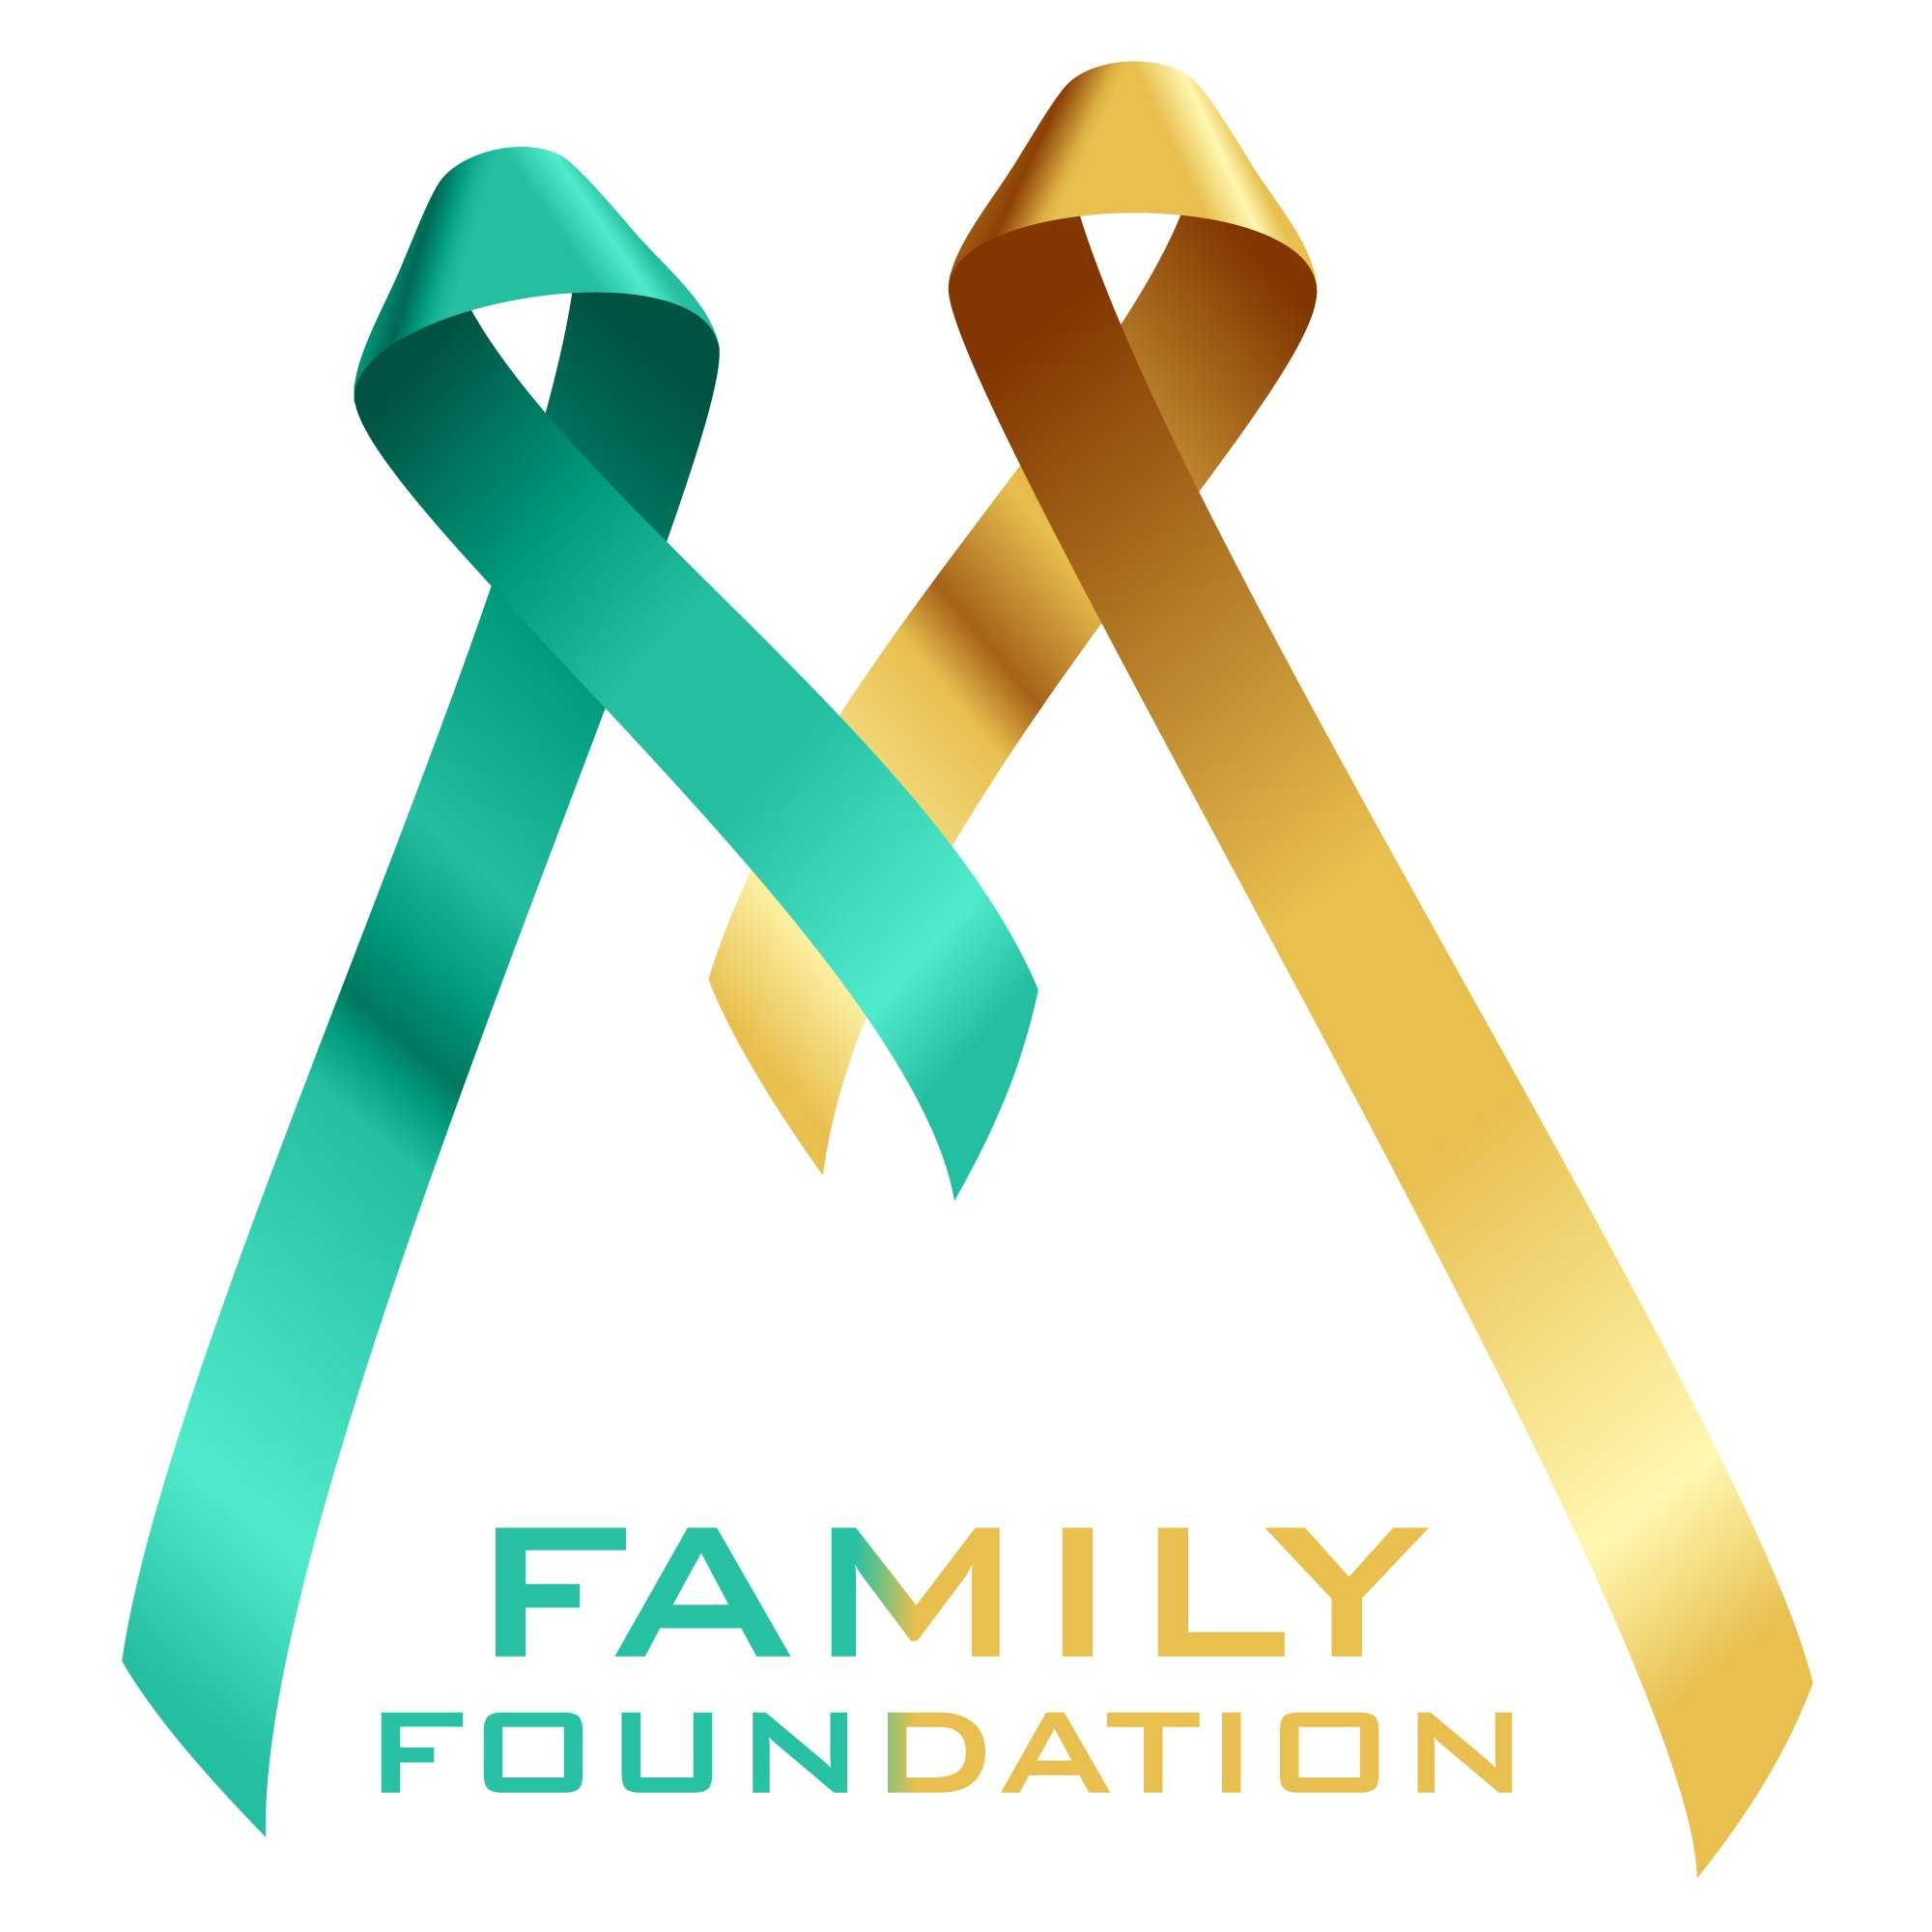 M Family Foundation